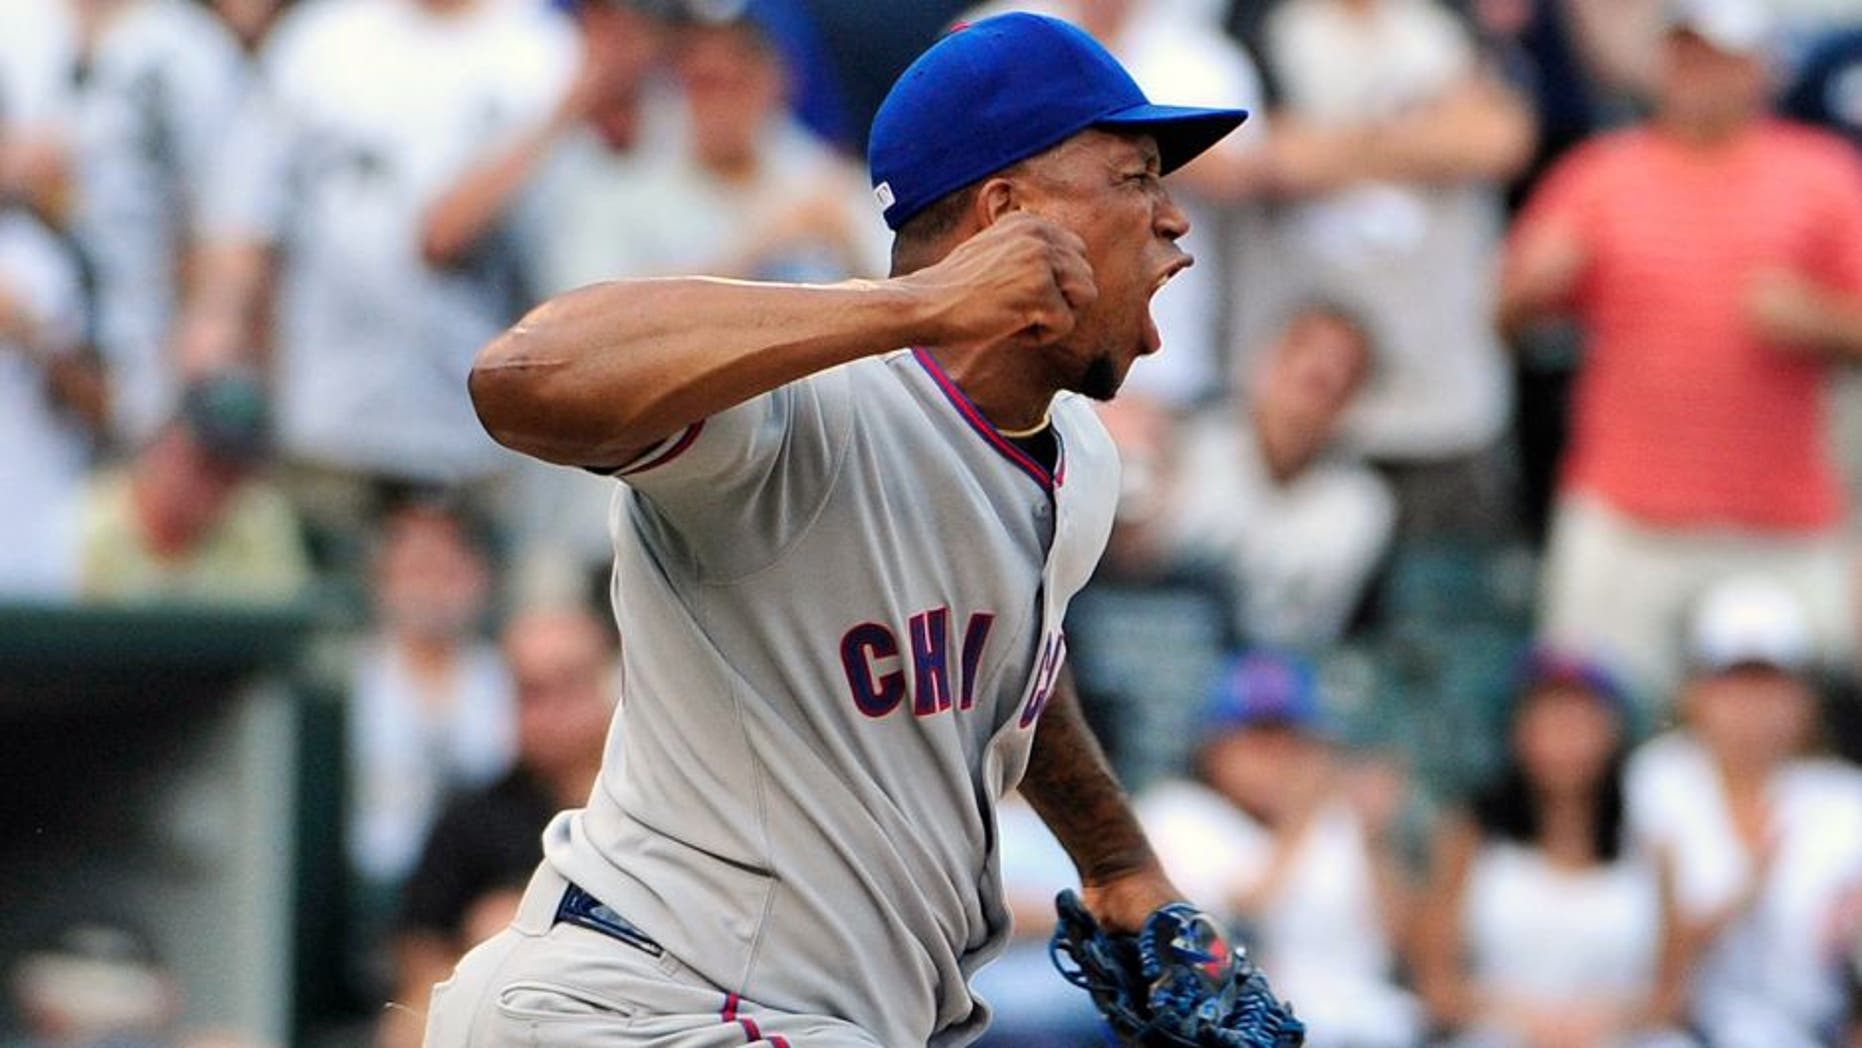 Aug 14, 2015; Chicago, IL, USA; Chicago Cubs relief pitcher Pedro Strop (46) reacts after striking out Chicago White Sox third baseman Tyler Saladino (not pictured) during the eighth inning at U.S Cellular Field. The Chicago Cubs defeated the Chicago White Sox 6-5. Mandatory Credit: David Banks-USA TODAY Sports